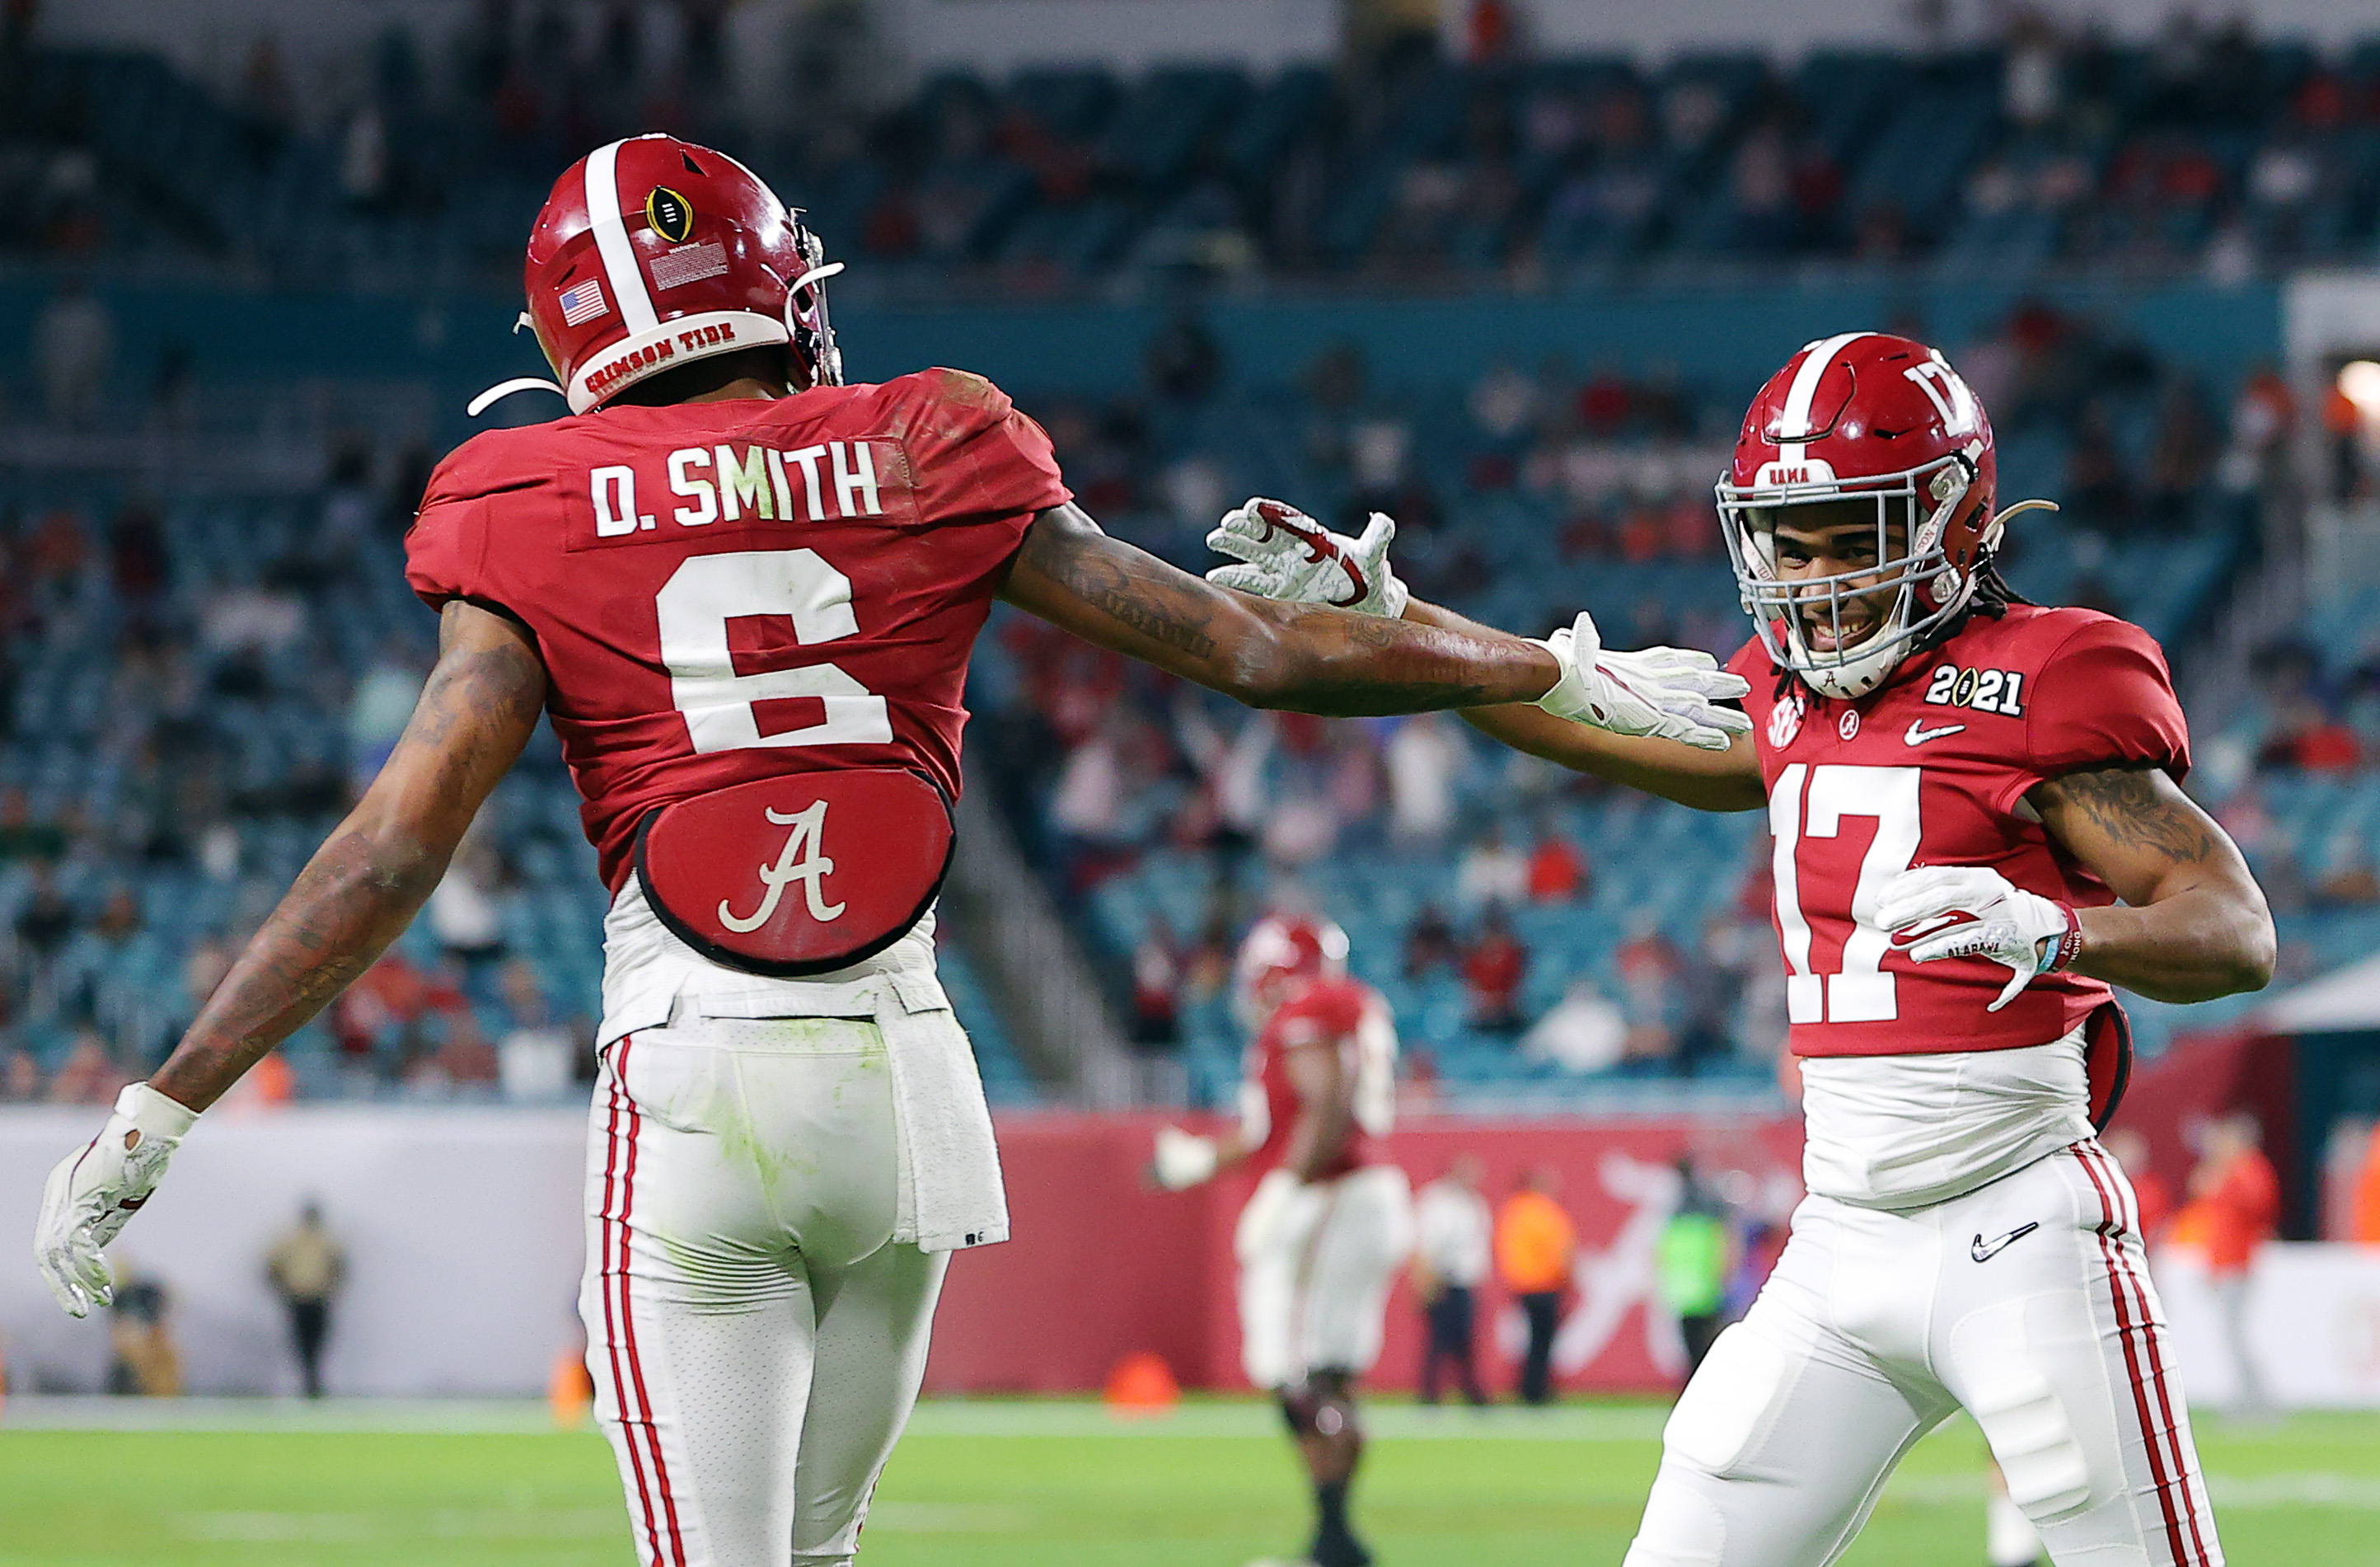 DeVonta Smith #6 of the Alabama Crimson Tide celebrates his touchdown with Jaylen Waddle #17 during the second quarter of the College Football Playoff National Championship game against the Ohio State Buckeyes at Hard Rock Stadium on January 11, 2021 in Miami Gardens, Florida.